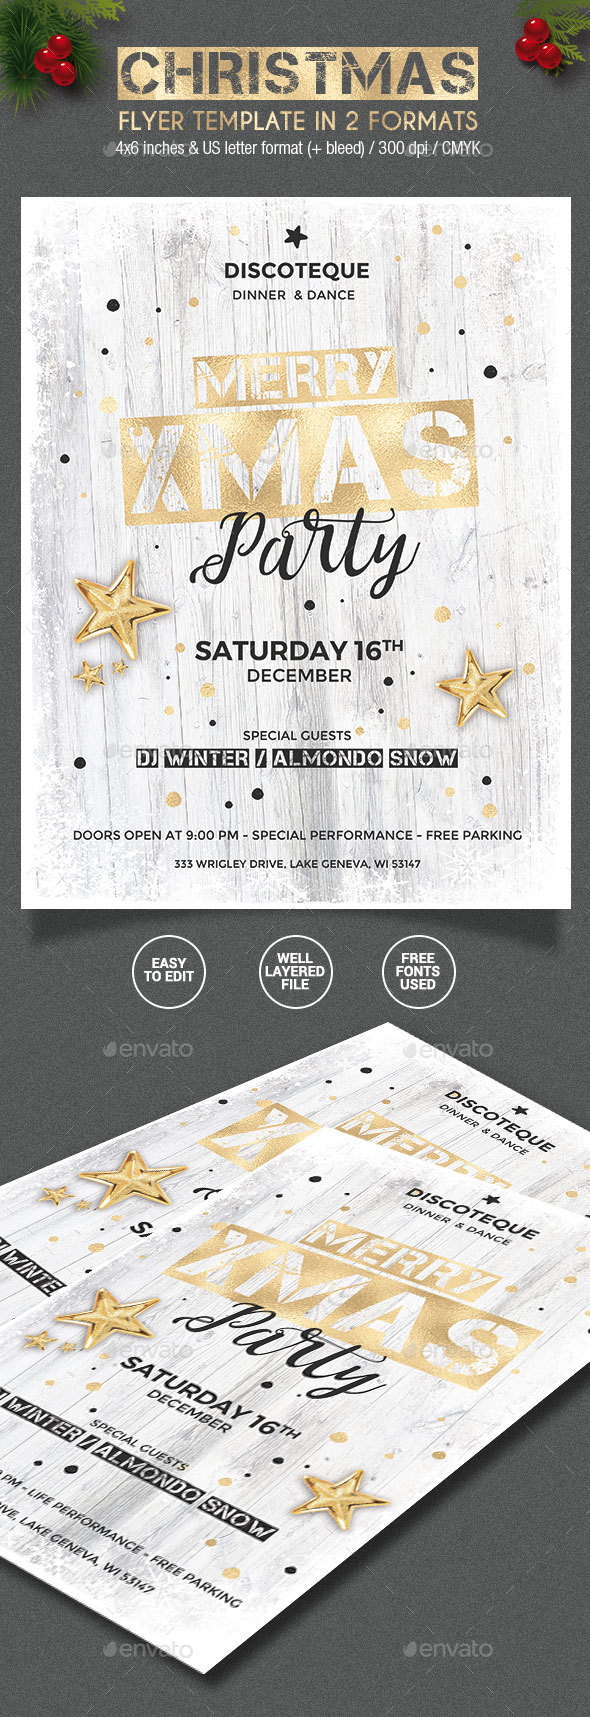 Gold / White Christmas Party Flyer - 2 formats - Holidays Events